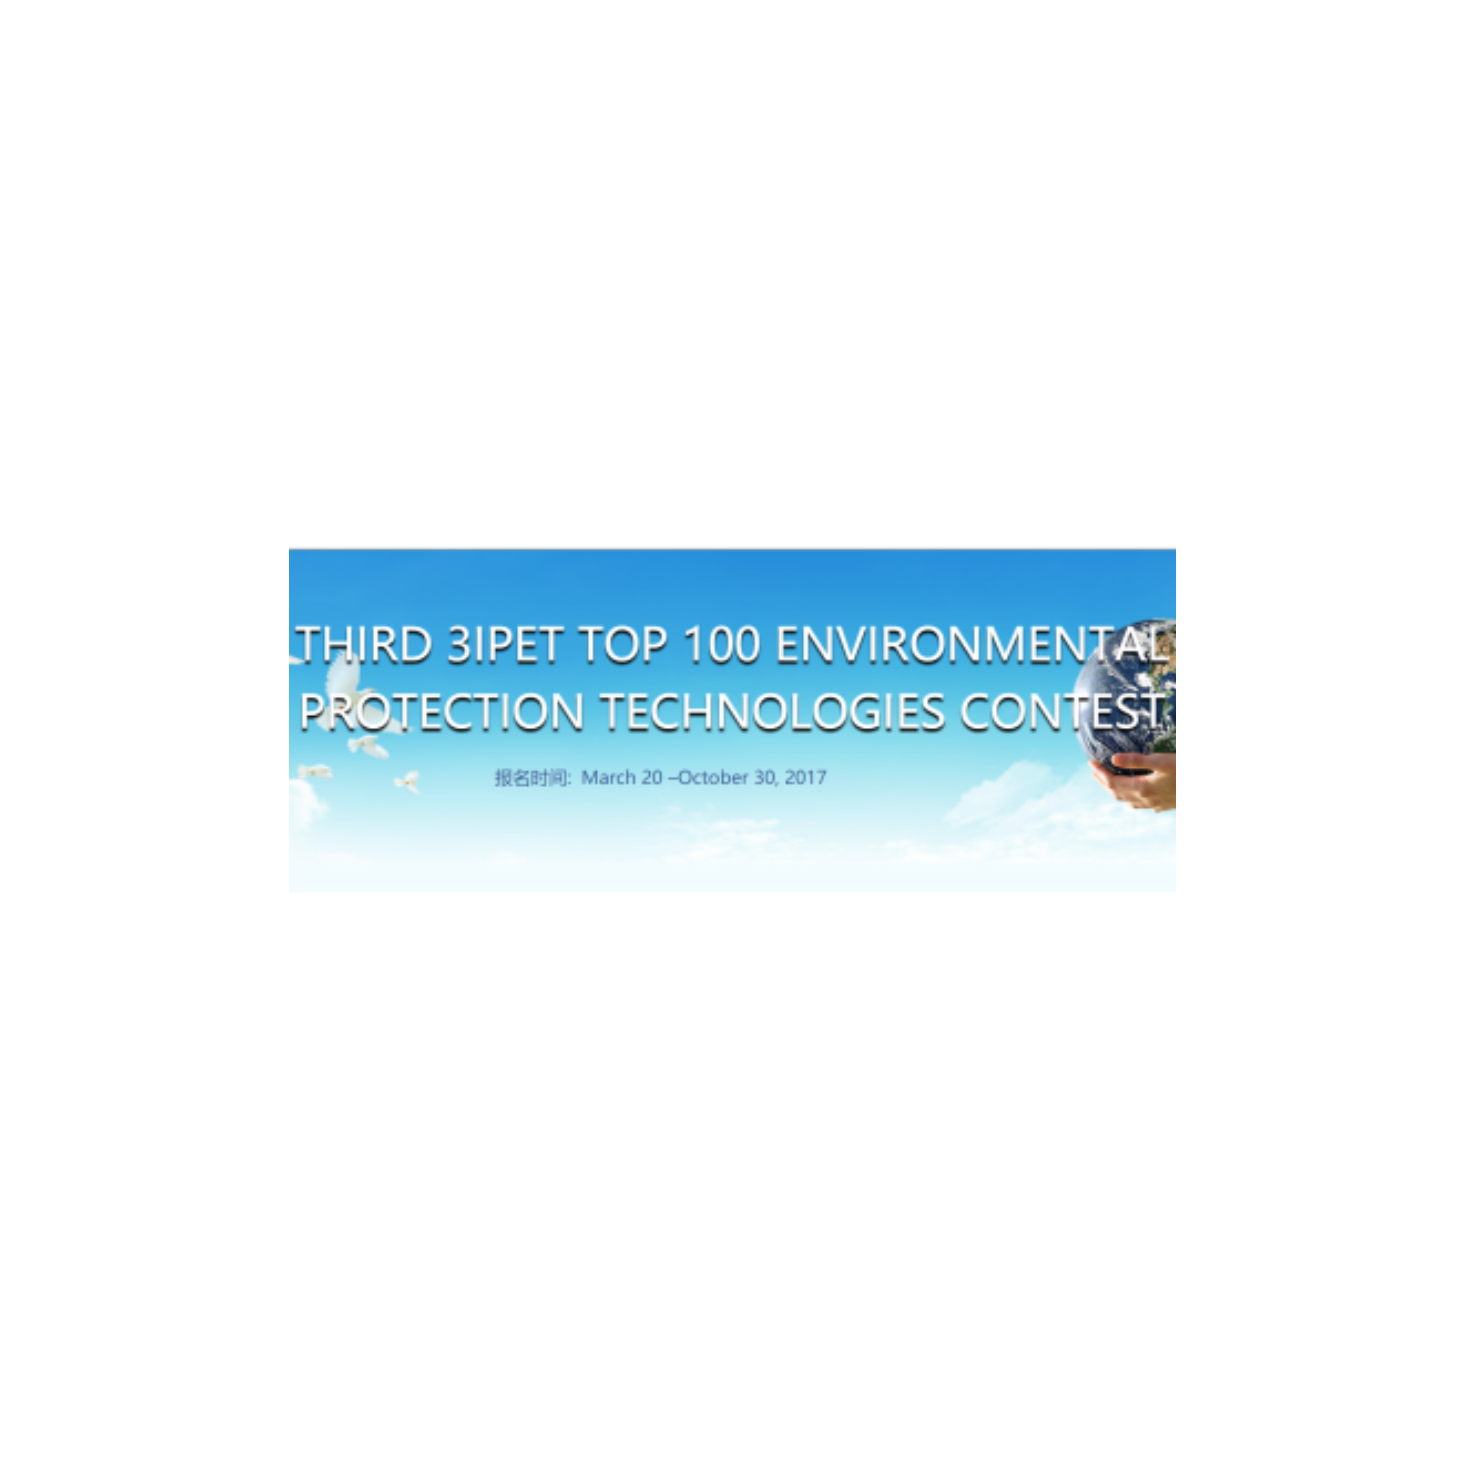 The 3rd 3iPET Top 100 Environmental Protection Technologies Contest